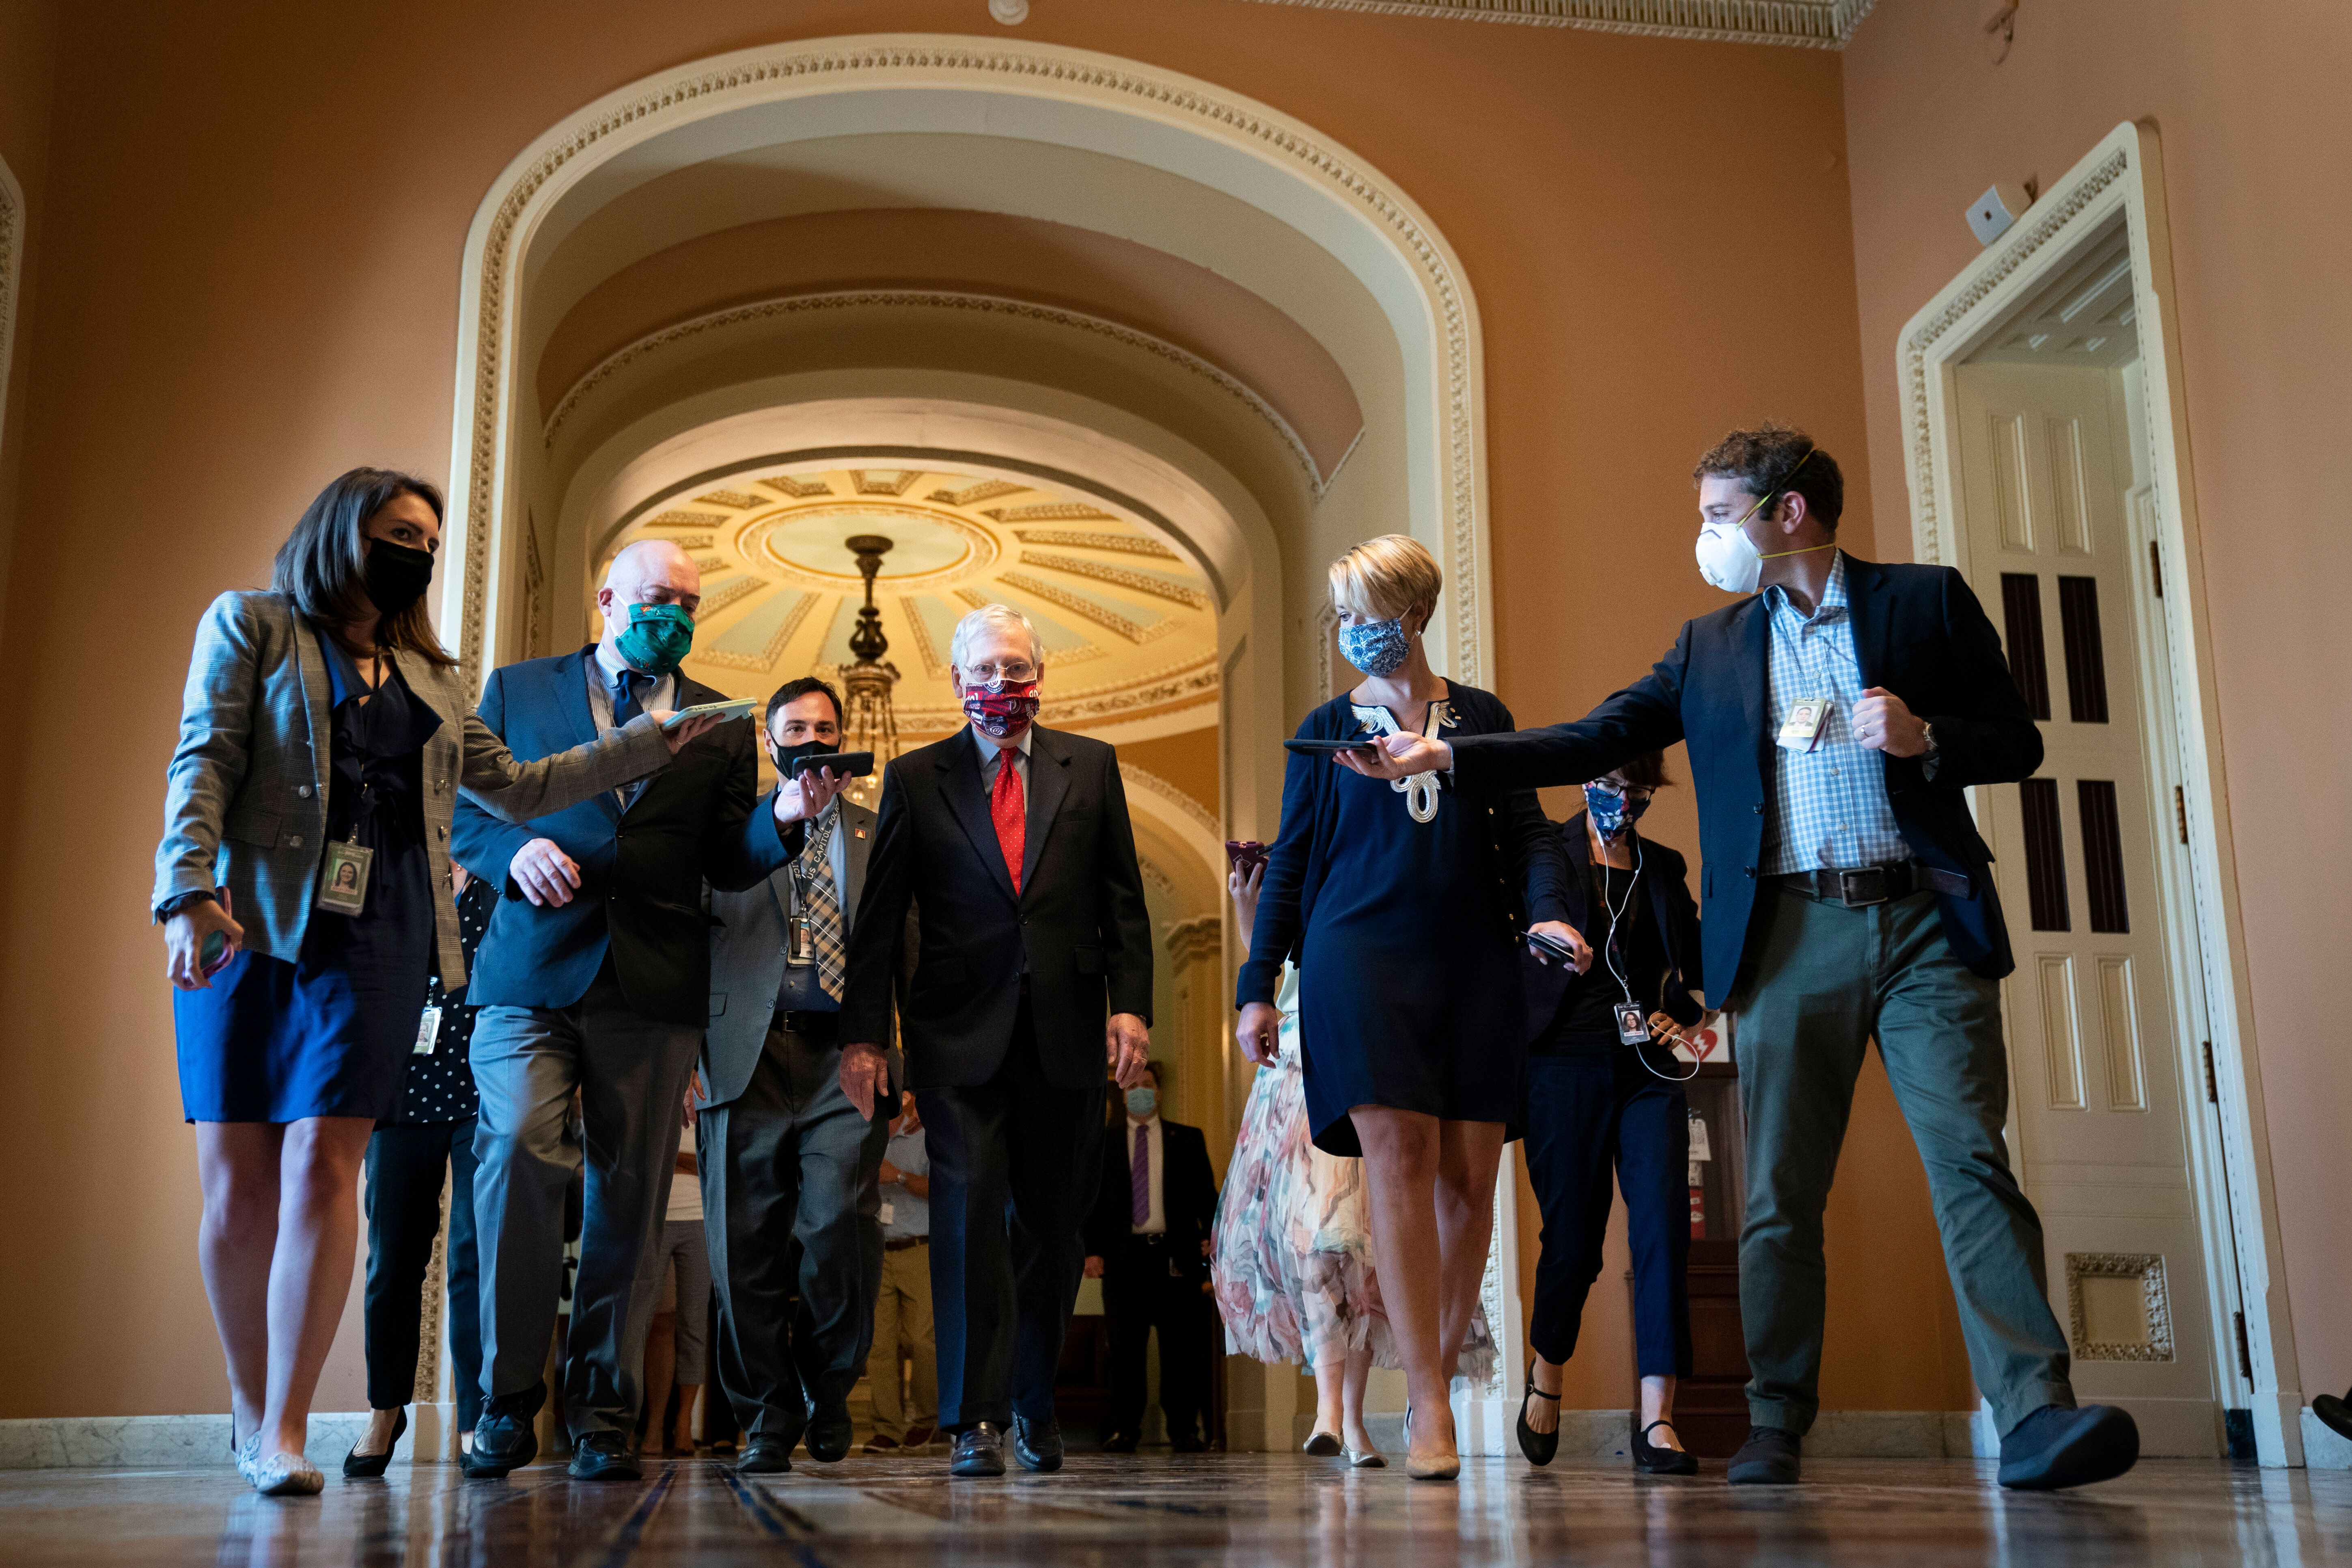 The Senate left town Thursday with no progress on a deal to extend federal unemployment benefits. (Photo by Drew Angerer/Gett